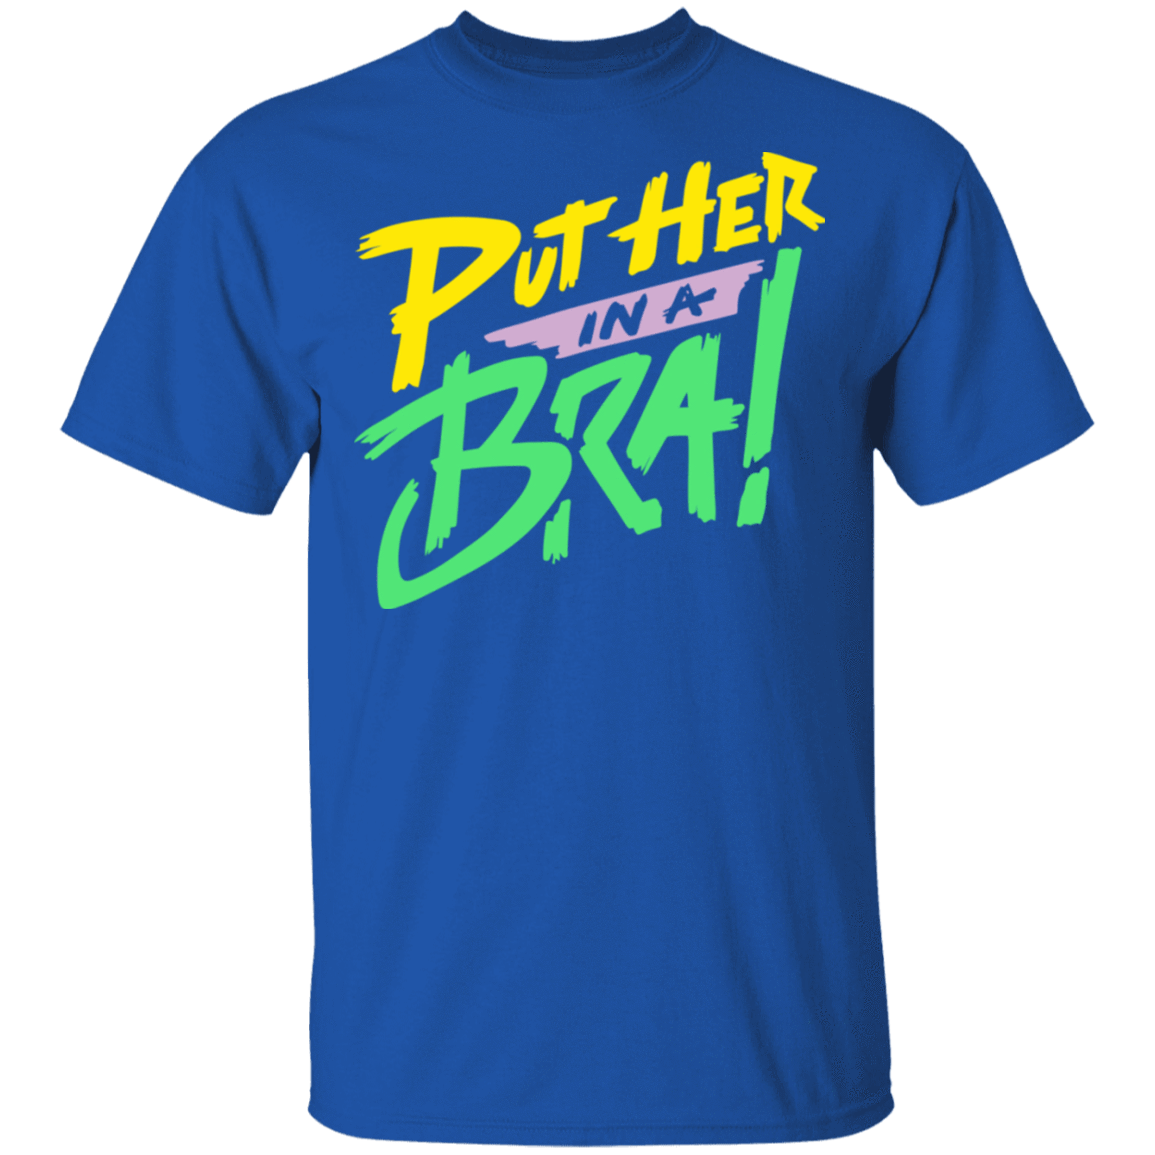 Put Her In A Bra! T-Shirts, Hoodies, Tank 22-110-79540867-249 - Tee Ript